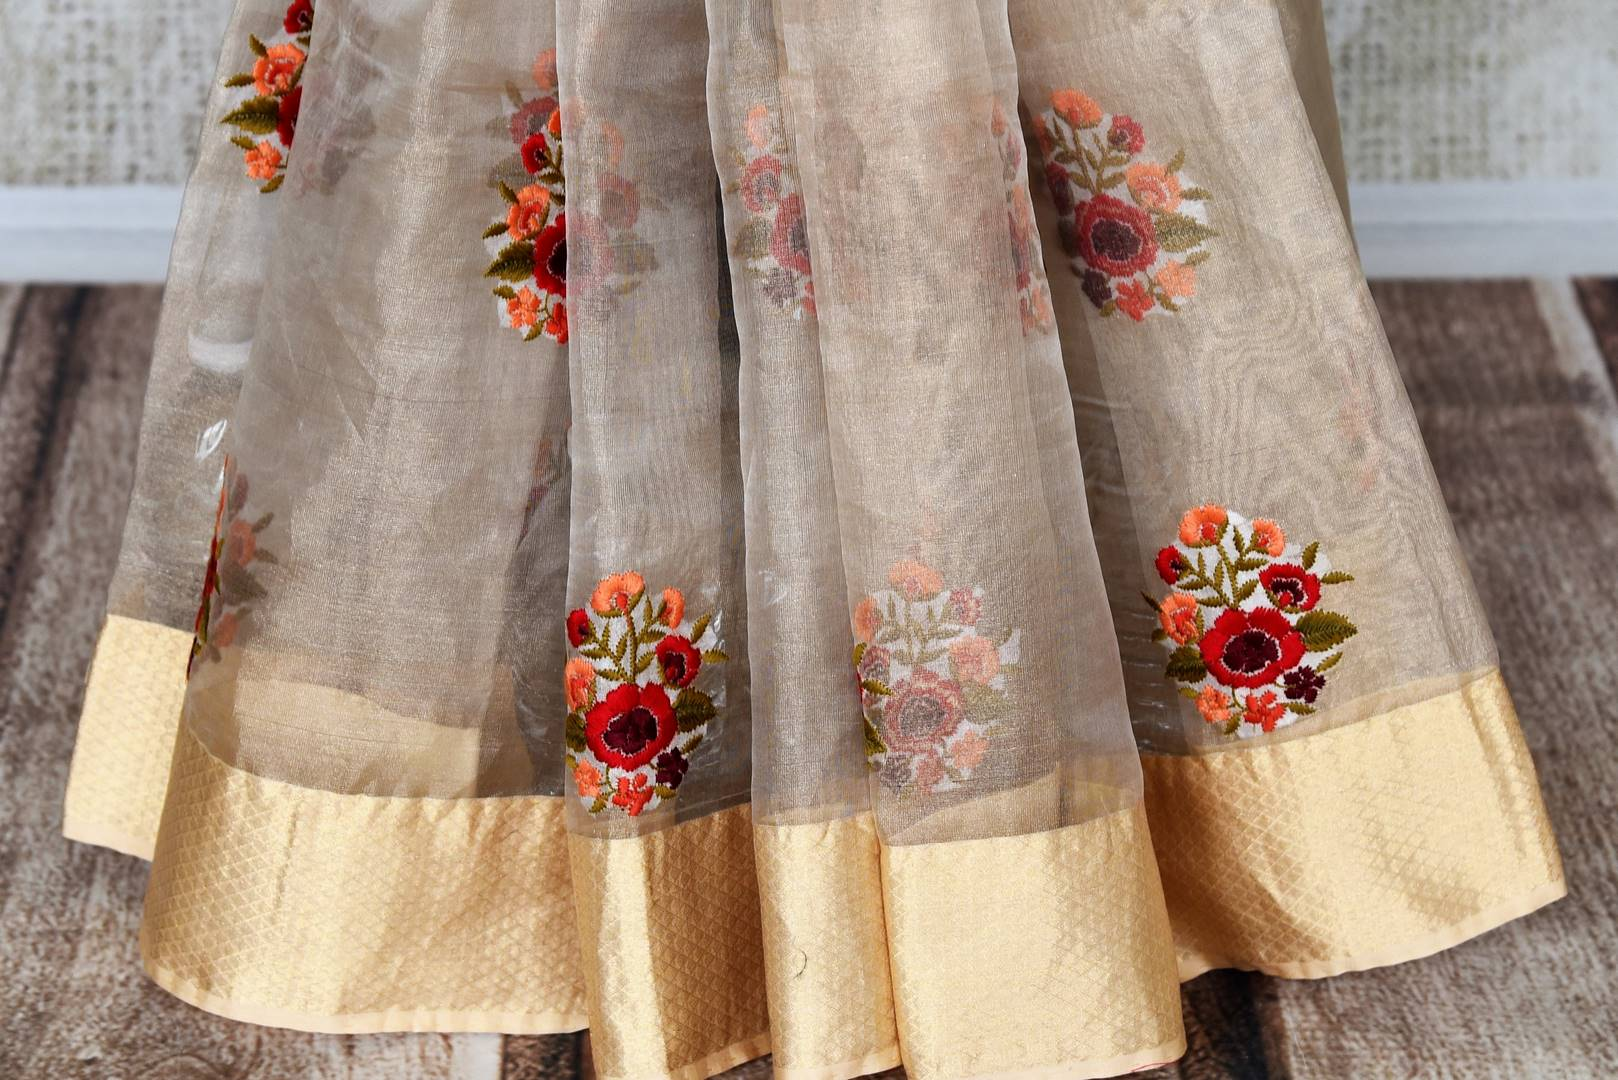 Buy cream resham embroidery tissue linen saree online in USA with zari border. Select your favorite Indian handloom saris, pure silk sarees, wedding sarees from Pure Elegance Indian fashion store in USA for weddings and special occasions.-pleats